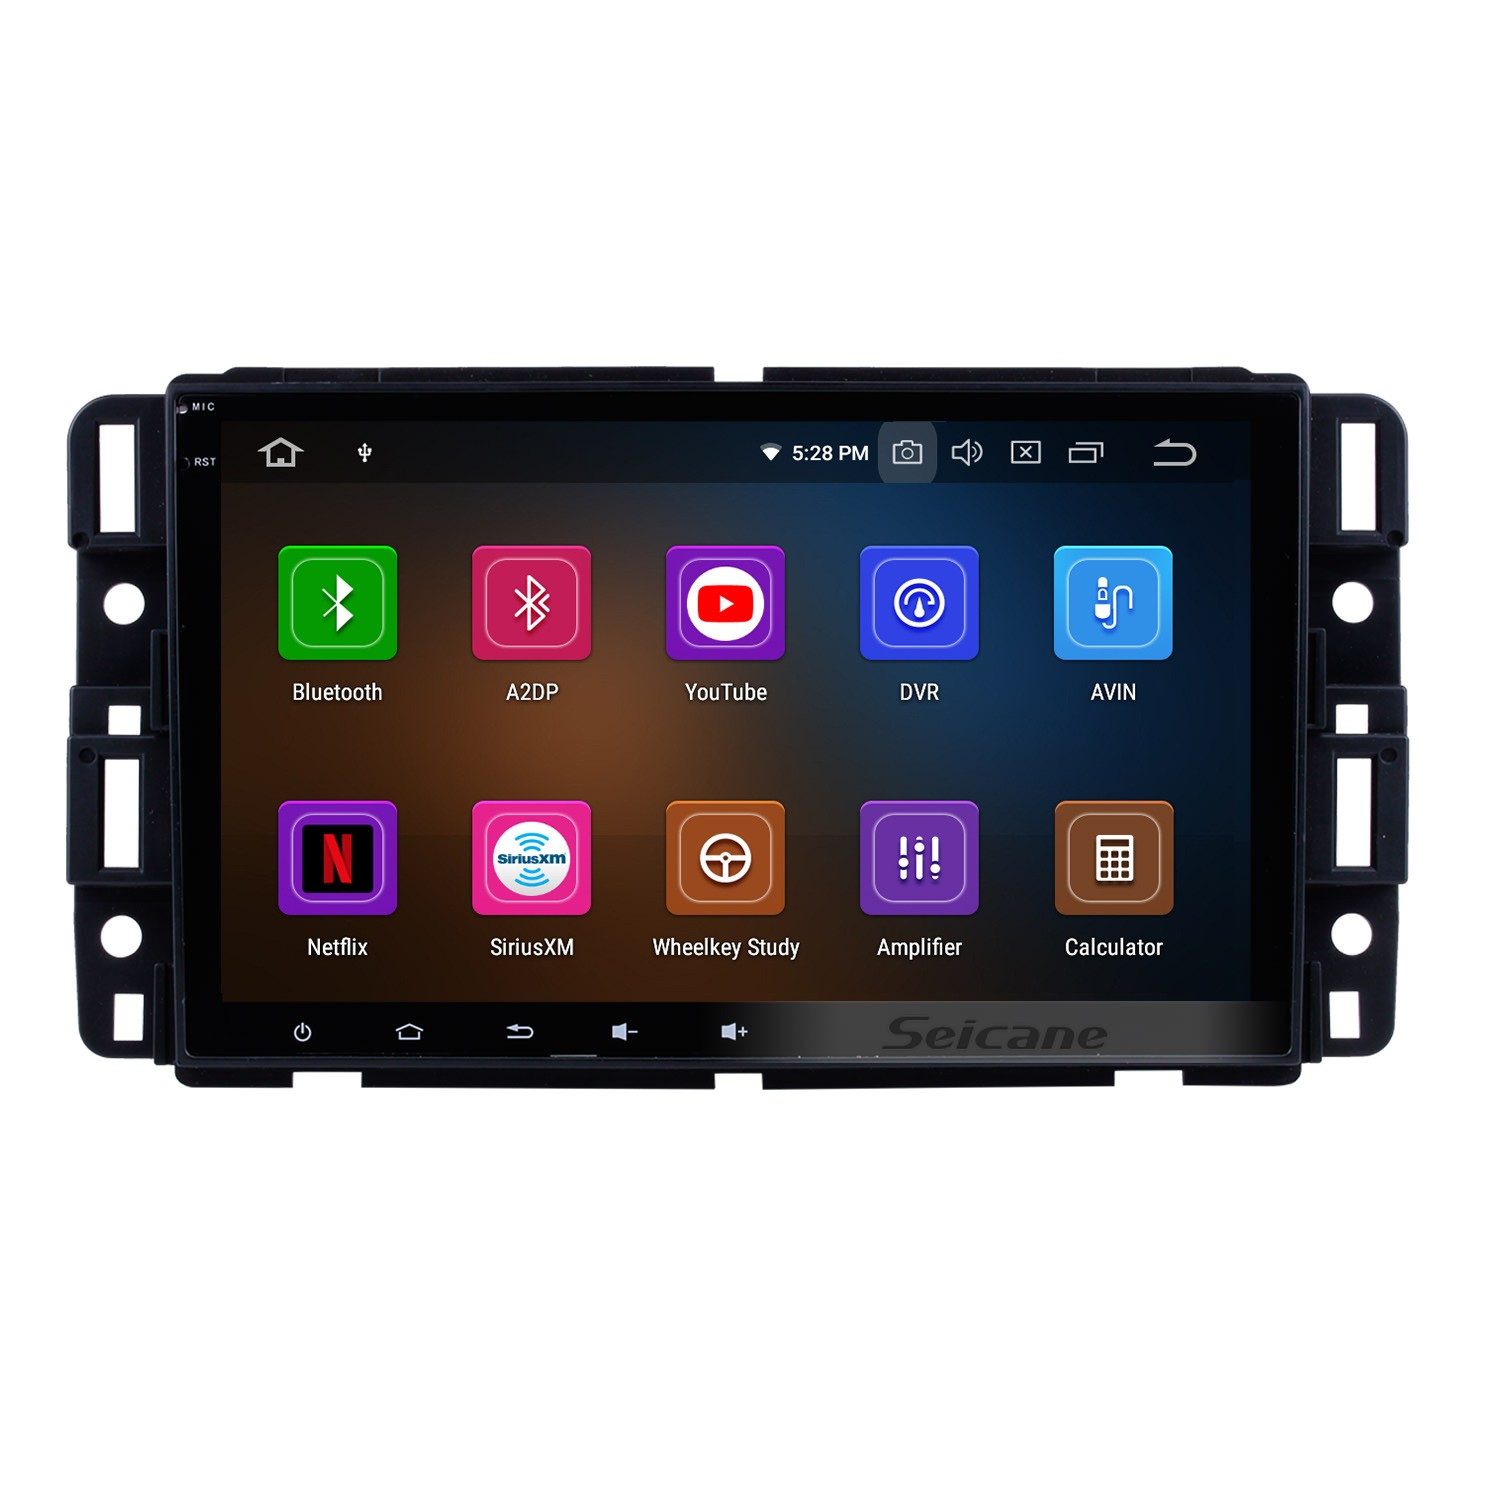 hight resolution of 8 inch android 9 0 hd touchscreen radio head unit for 2009 2010 2011 chevrolet chevy traverse